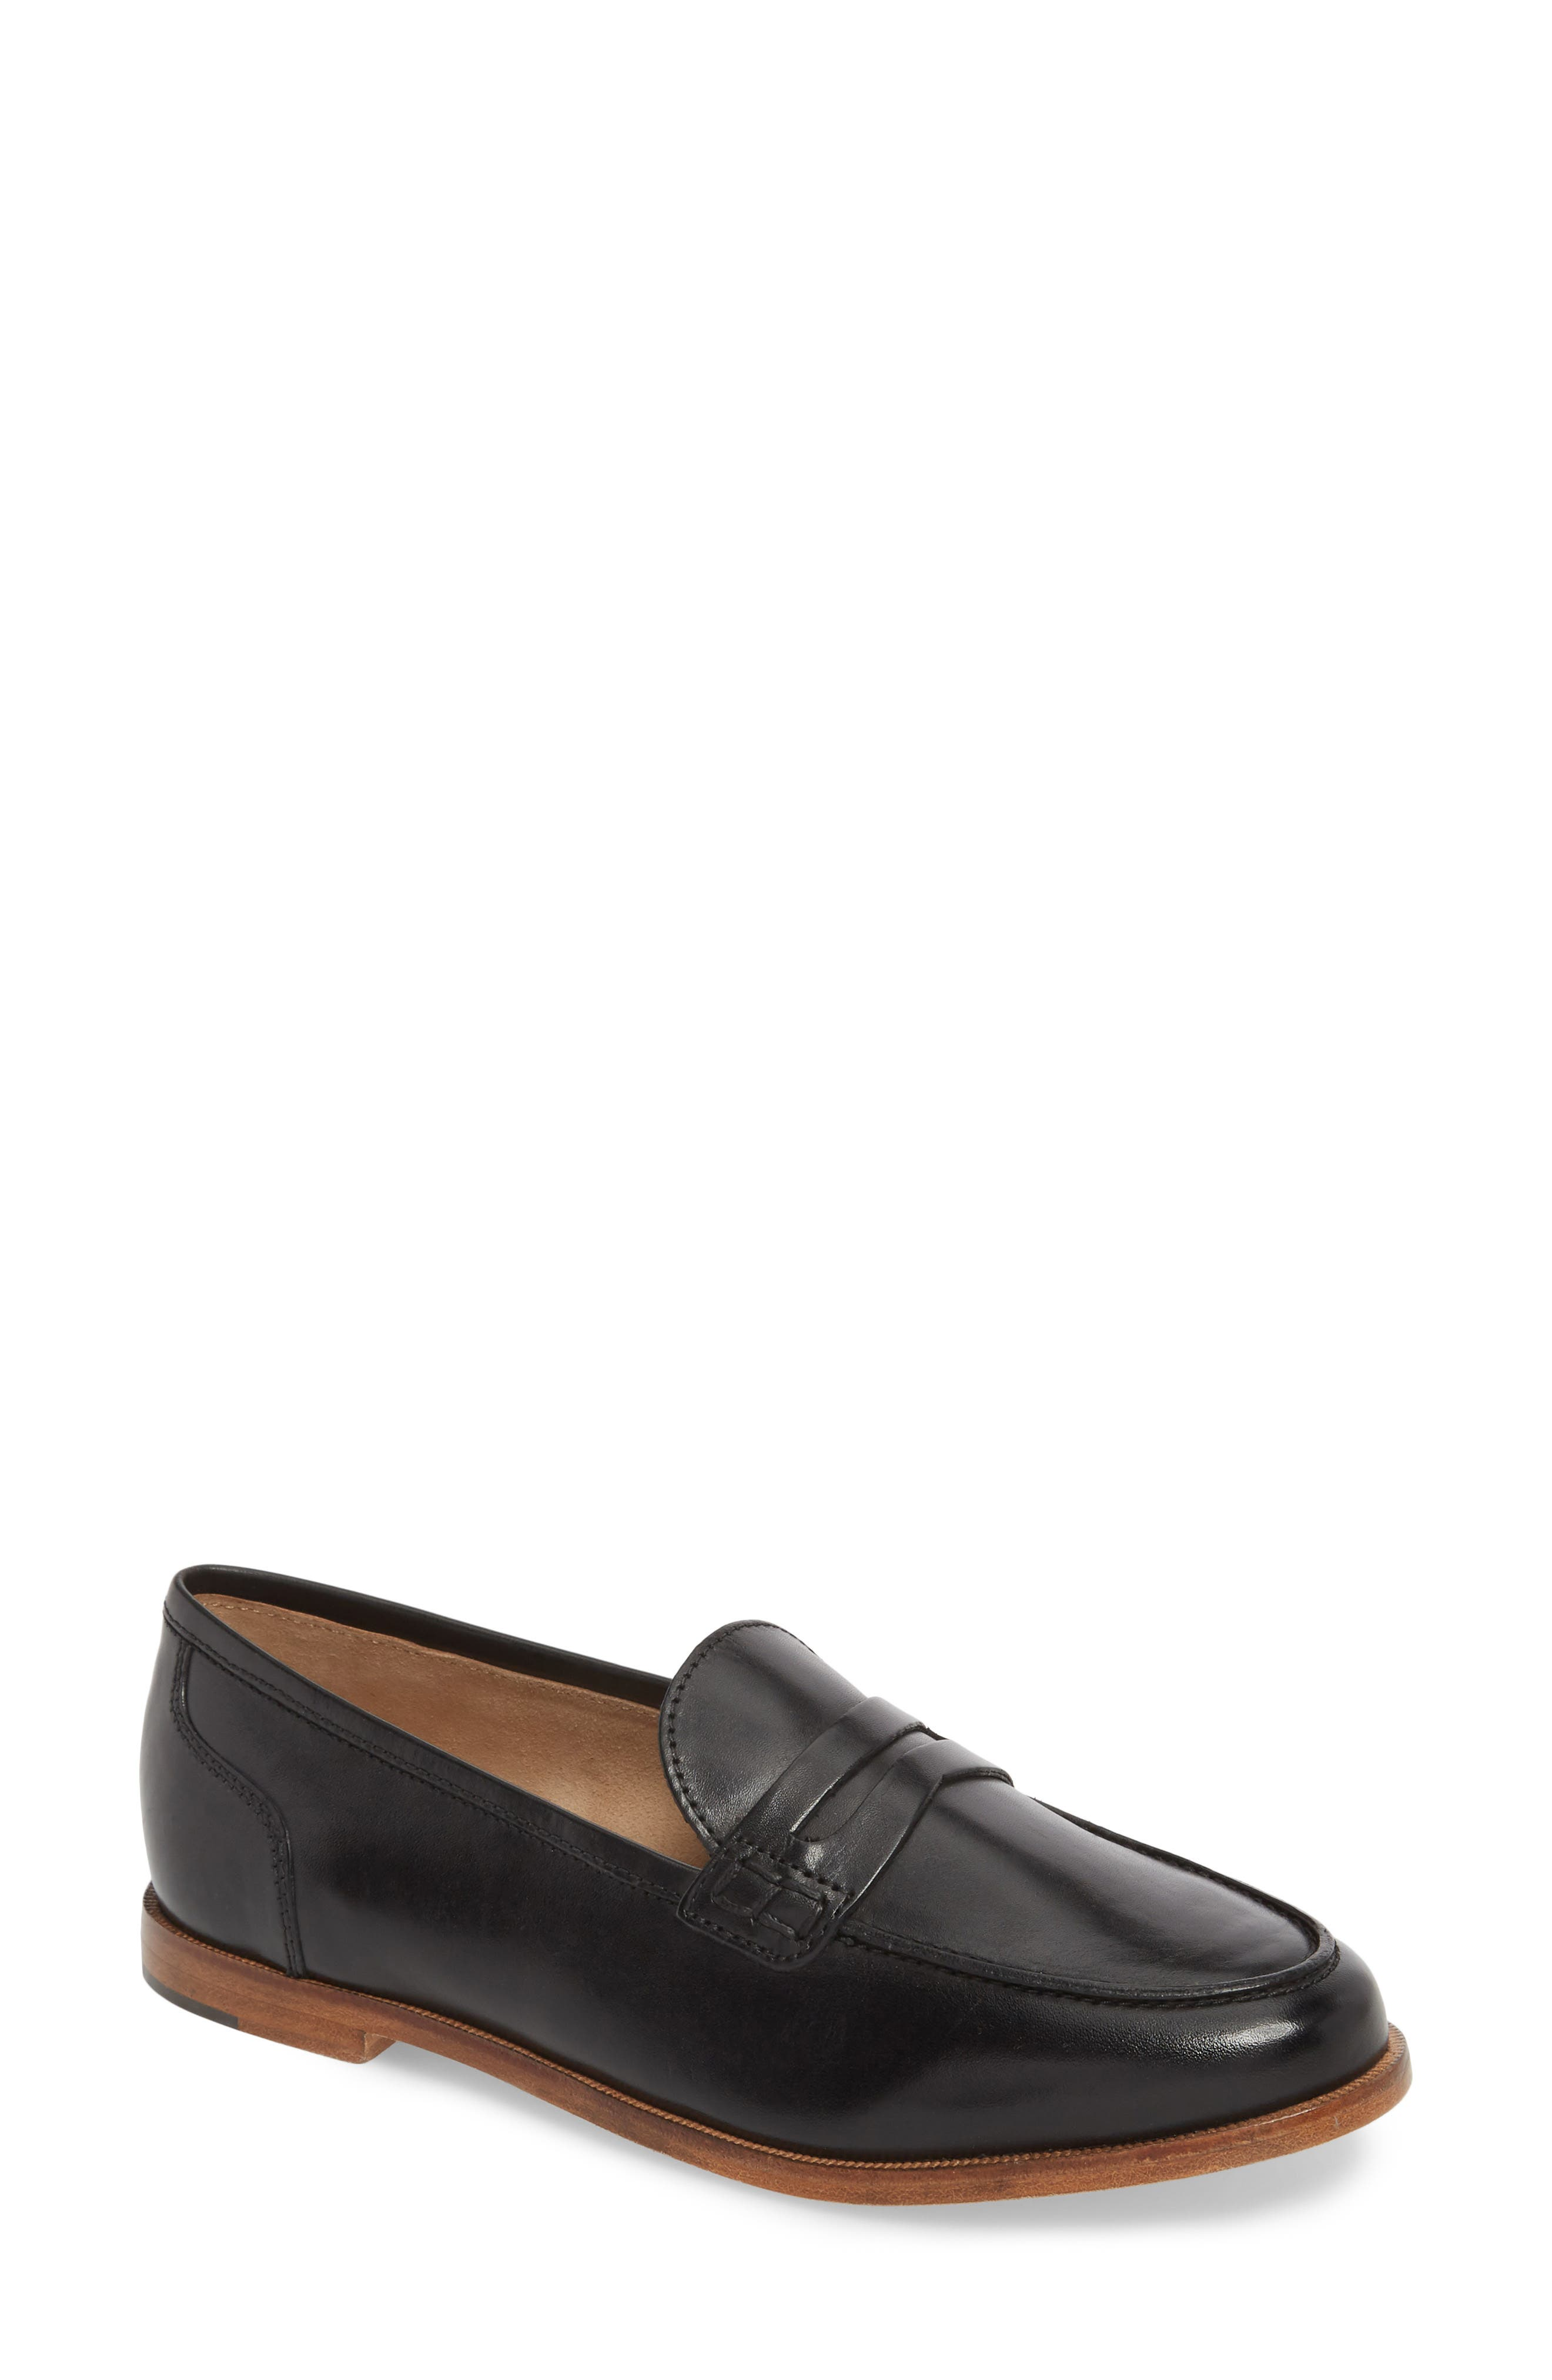 J.CREW Ryan Penny Loafer, Main, color, BLACK LEATHER